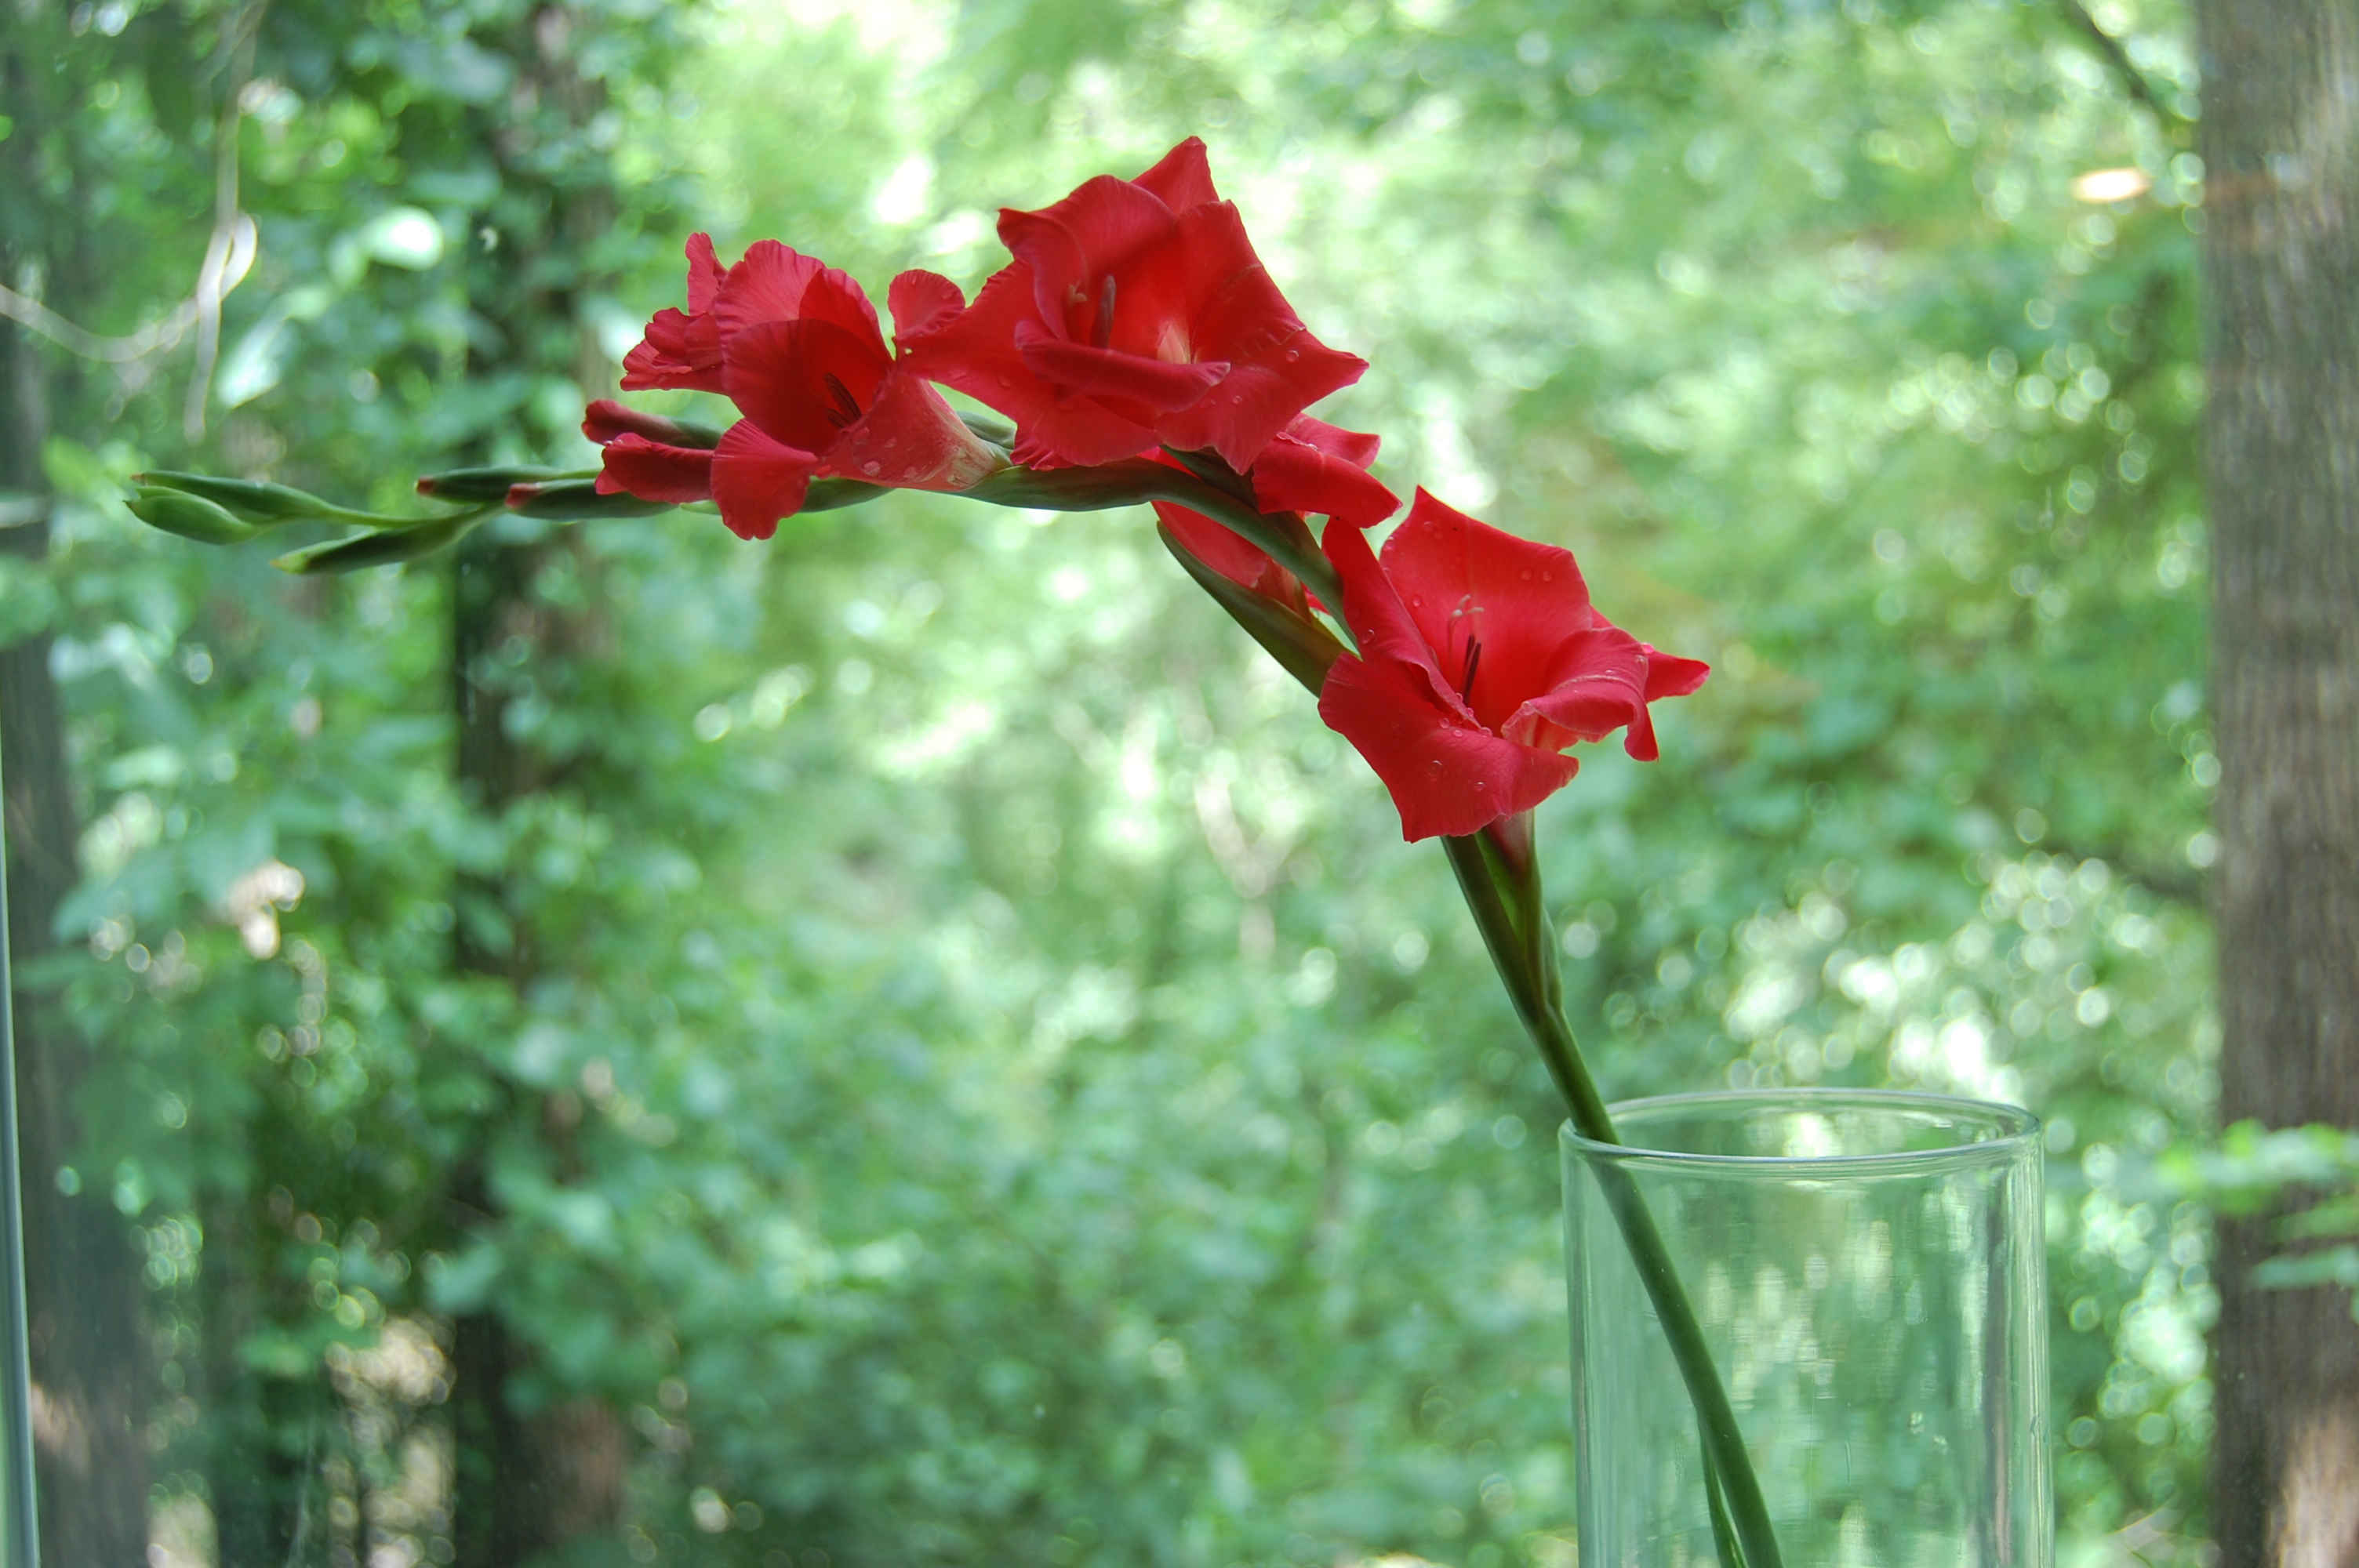 The Gladiolus Project - Red Gladiolus from the Garden